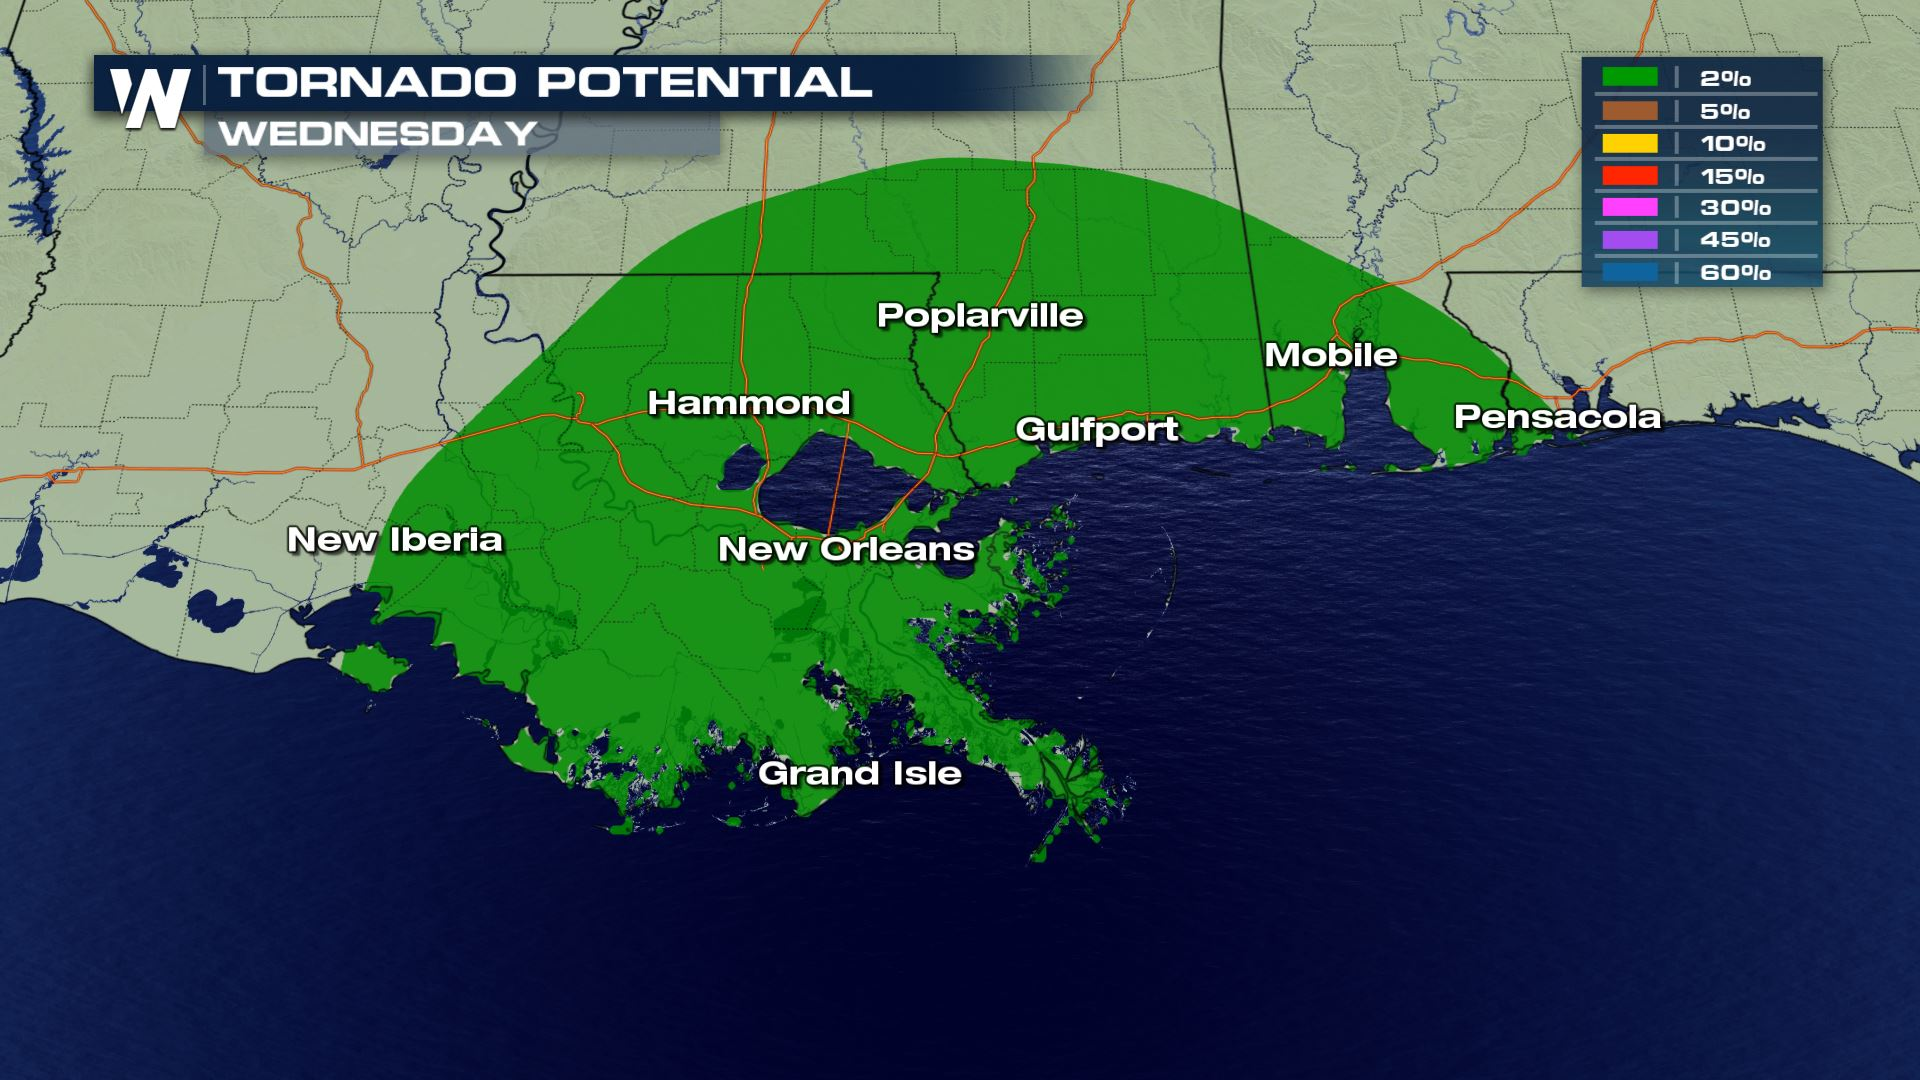 Isolated Severe Storms for the Gulf Coast Wednesday